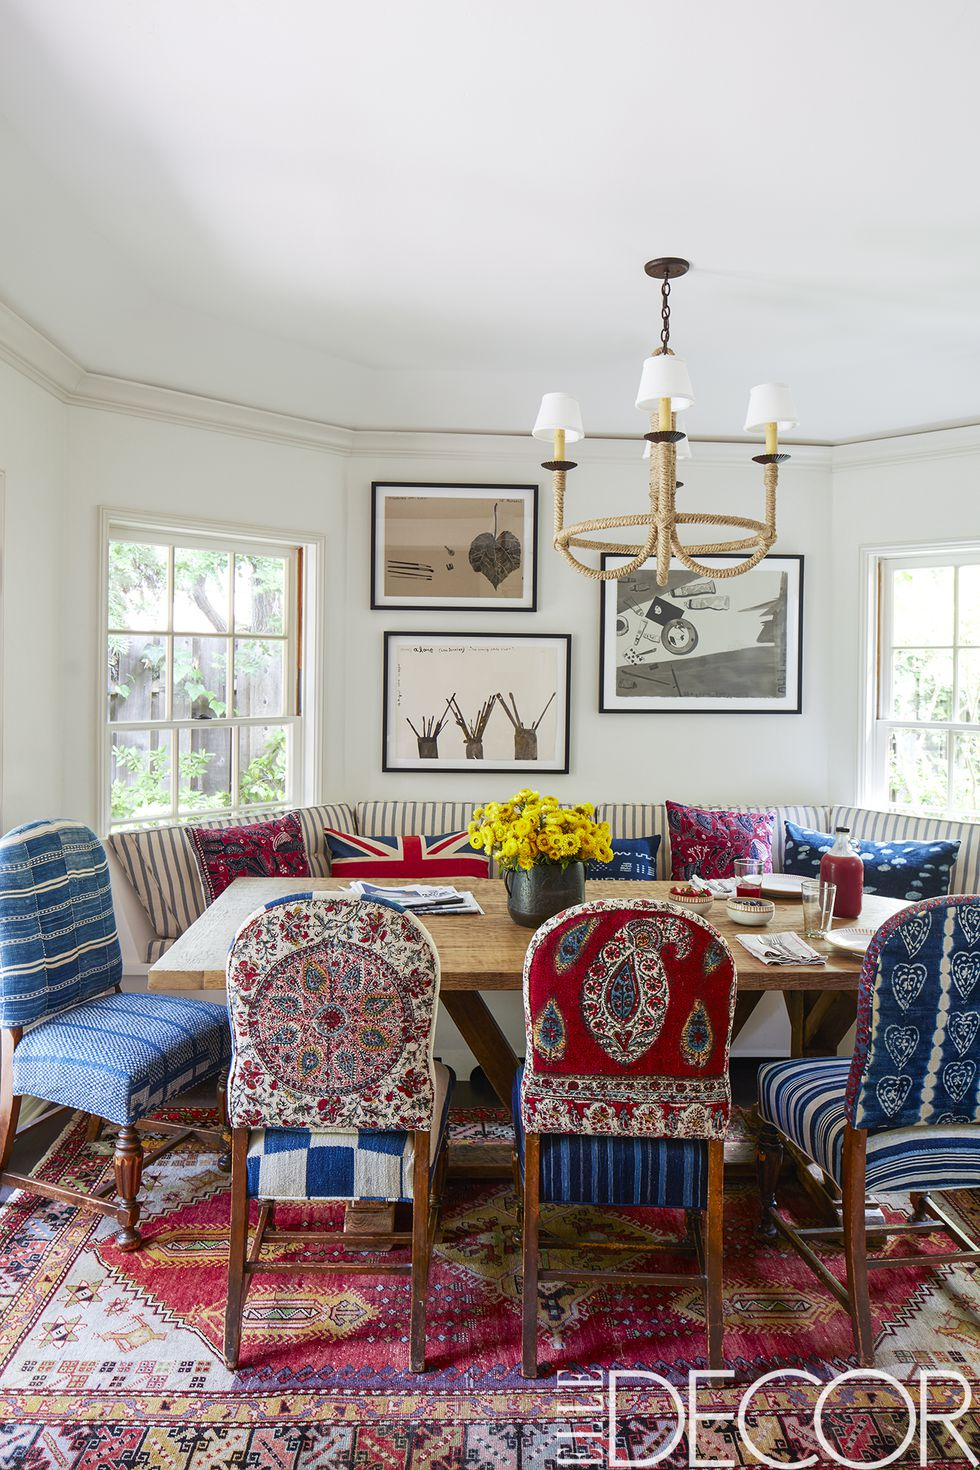 The chairs in the dining area came from Driver's former house and were re-covered in vintage Islamic and African textiles, the banquette is covered in a Pindler stripe, the chandelier is by    Hollywood at Home   , the vintage rug is from    Jamal's Rug Collection    and the watercolors are by   Konstantin Kakanias  .